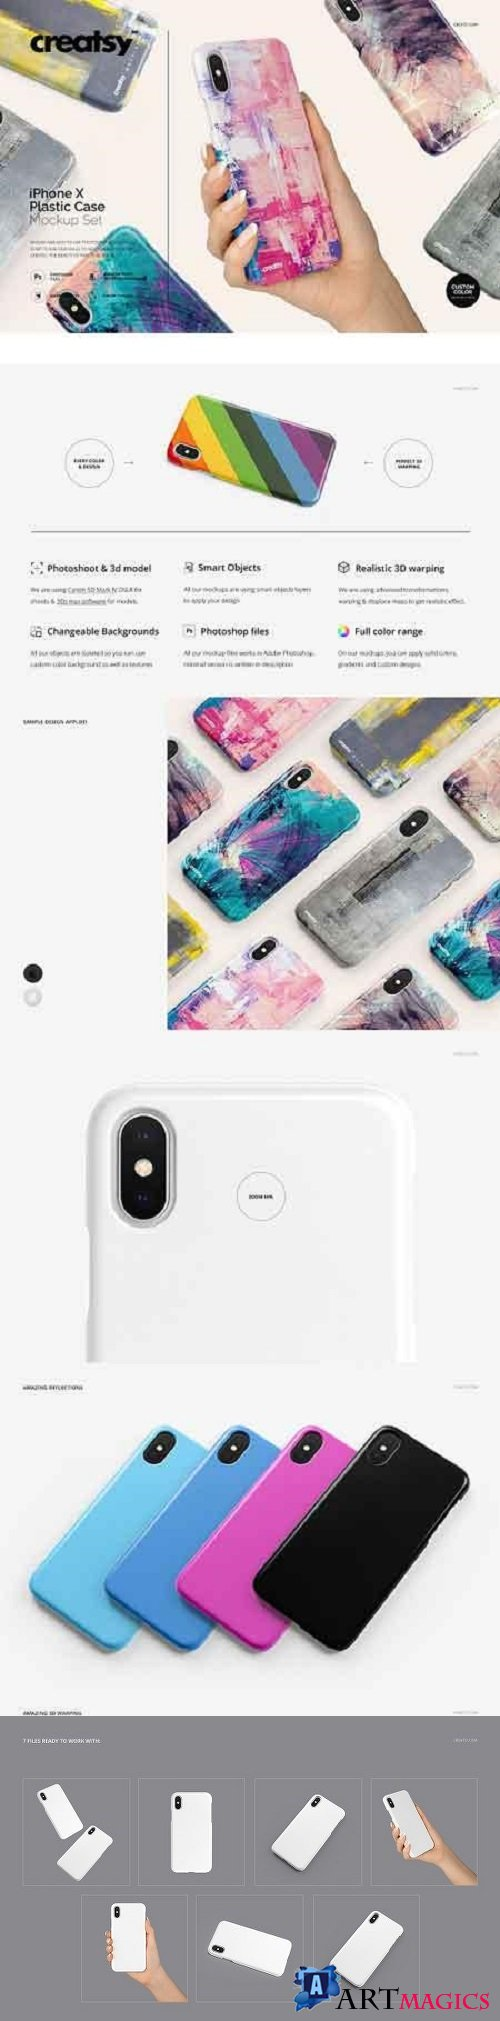 iPhone X Plastic Case Mockup Set 2115910